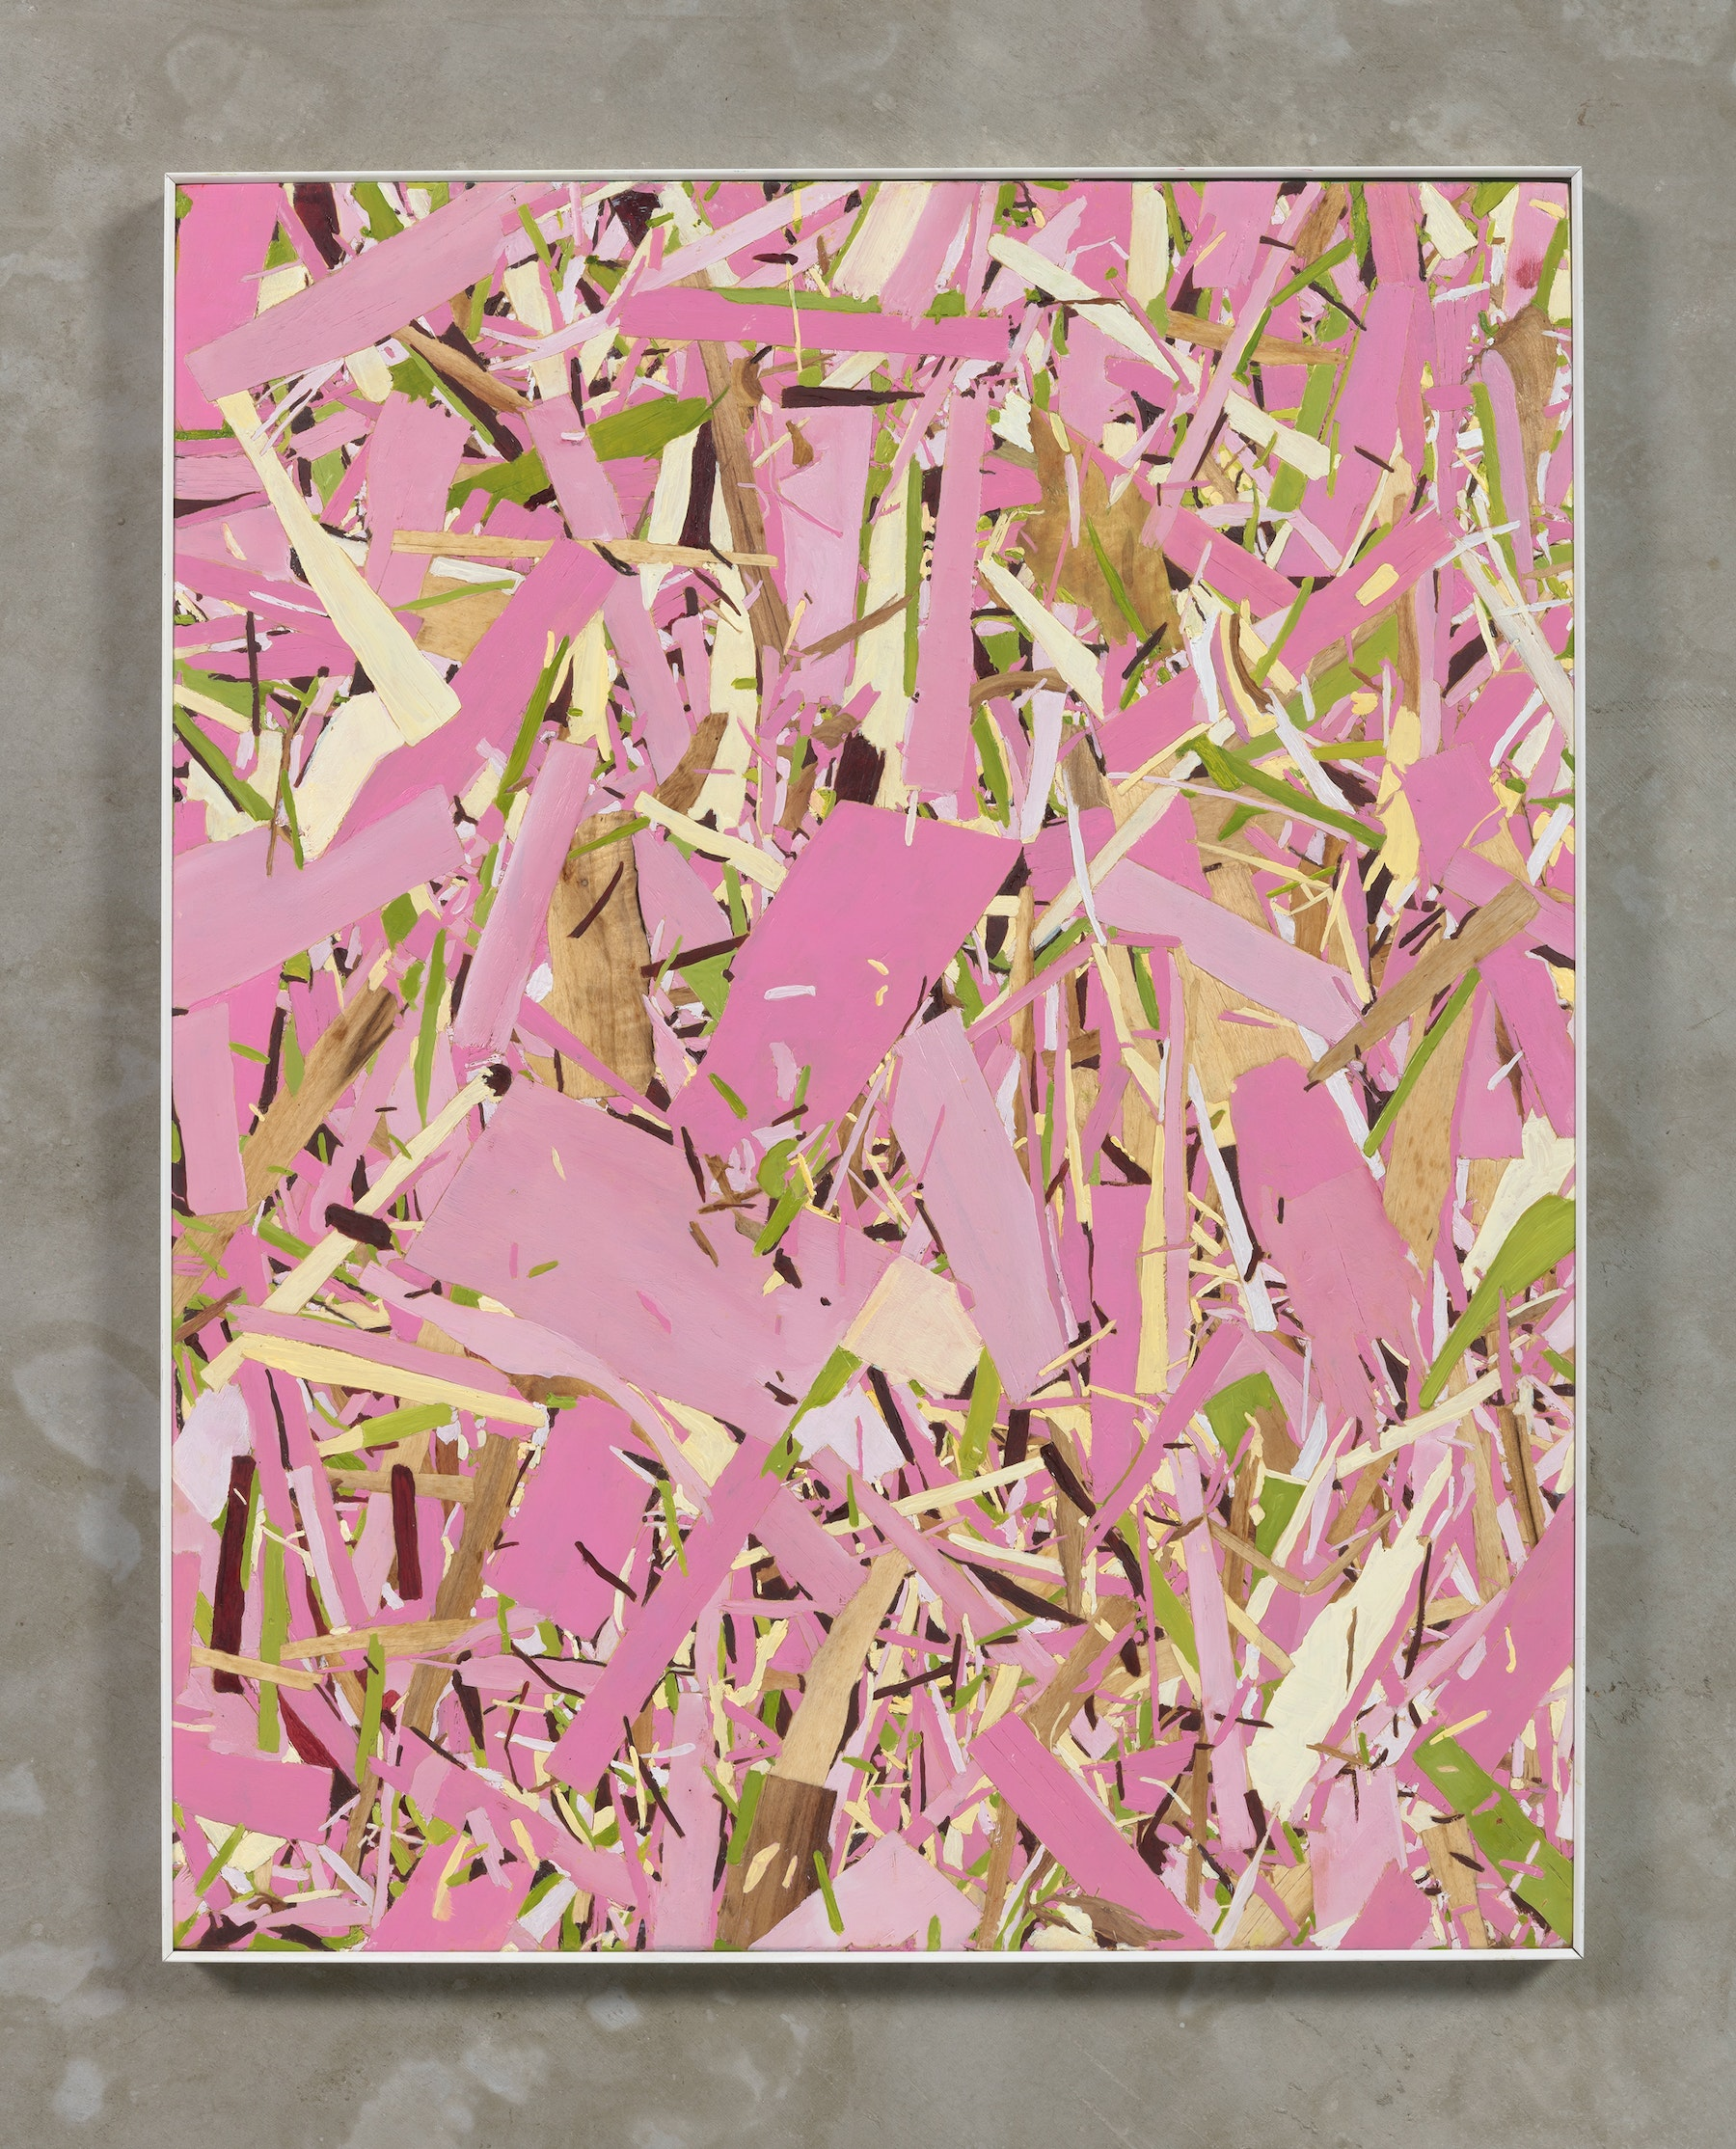 "Kim Dingle ""Home Depot Coloring book, pink, (anyone can do it),"" 2018 Oil on osb board 24 x 19"" [HxW] (60.96 x 48.26 cm) Inventory #DIN243 Courtesy of the artist and Vielmetter Los Angeles Photo credit: Robert Wedemeyer"